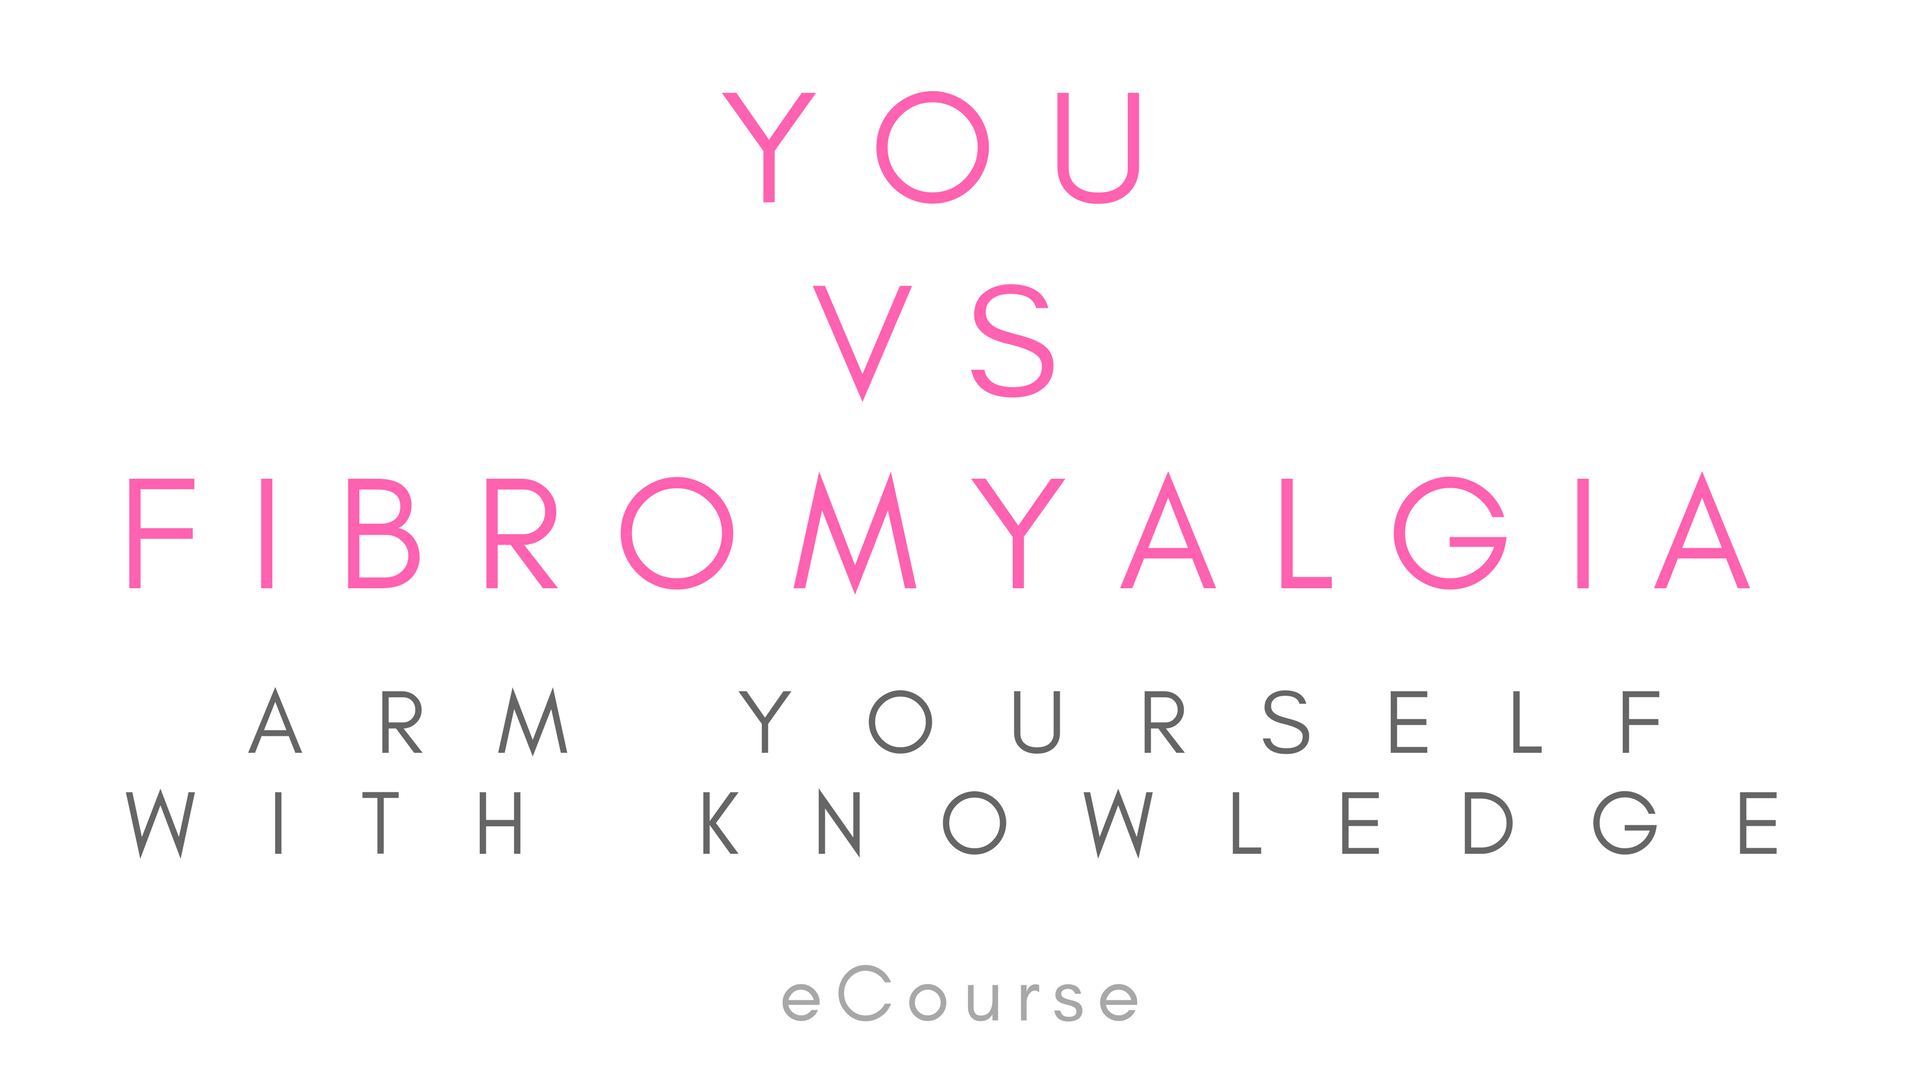 You vs Fibromyalgia Arm Yourself with knowledge